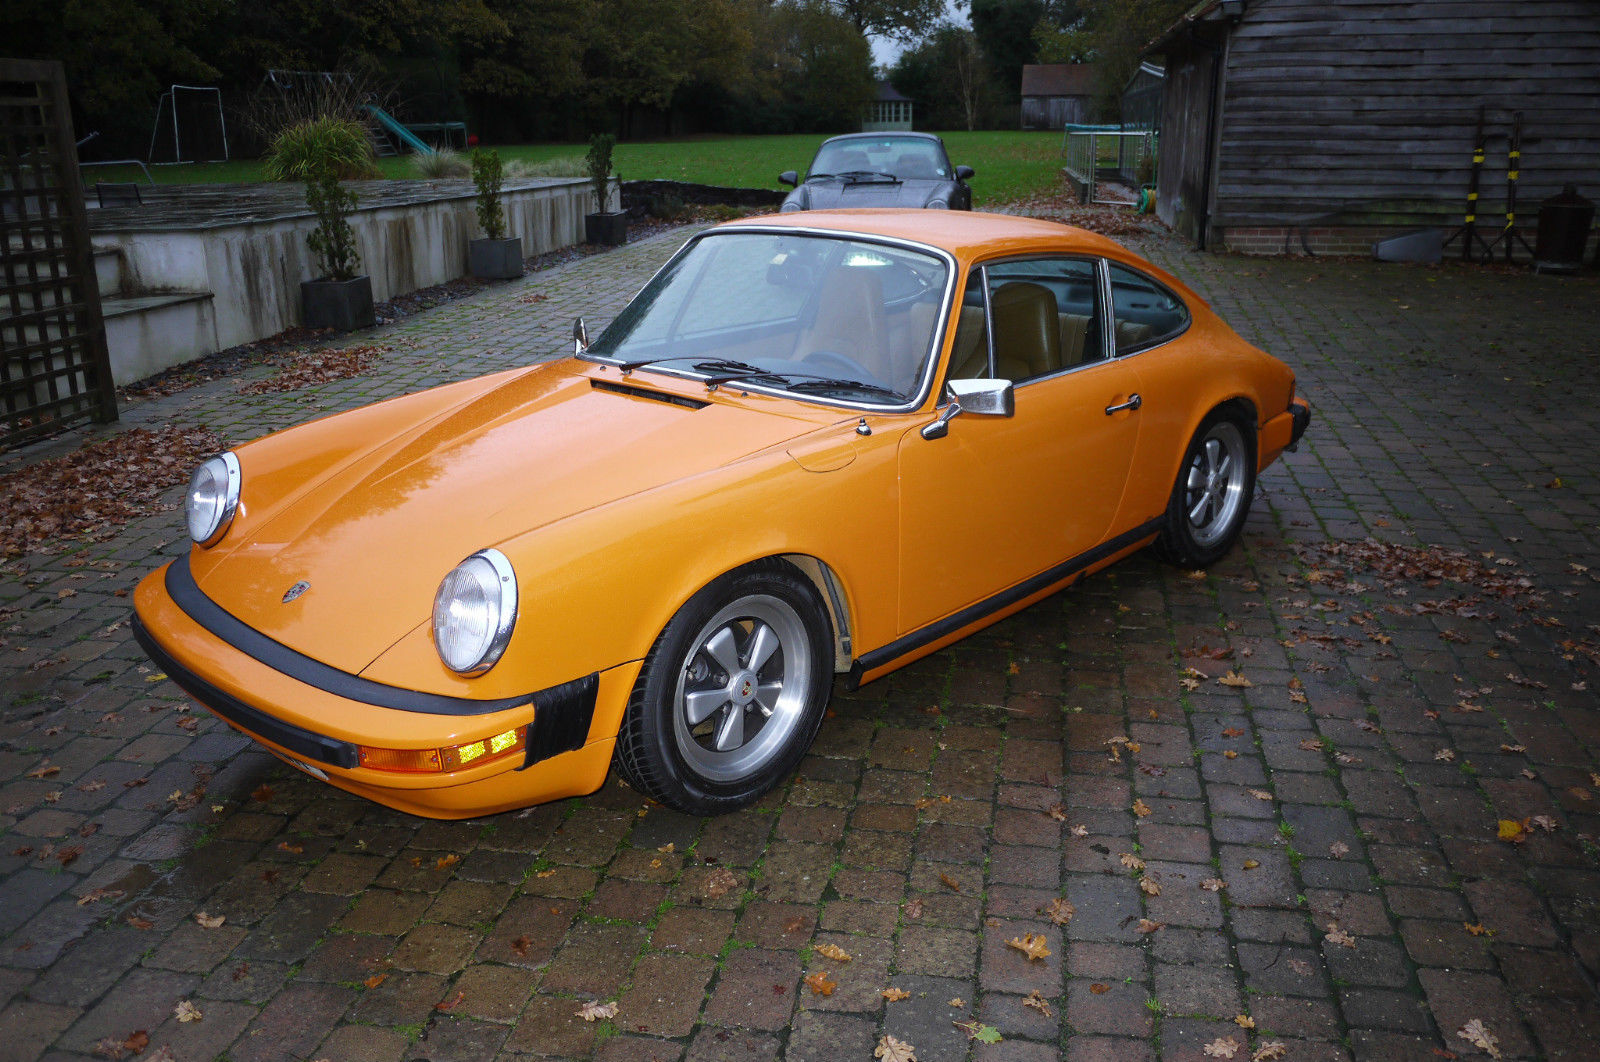 Porsches For Sale - For Sale